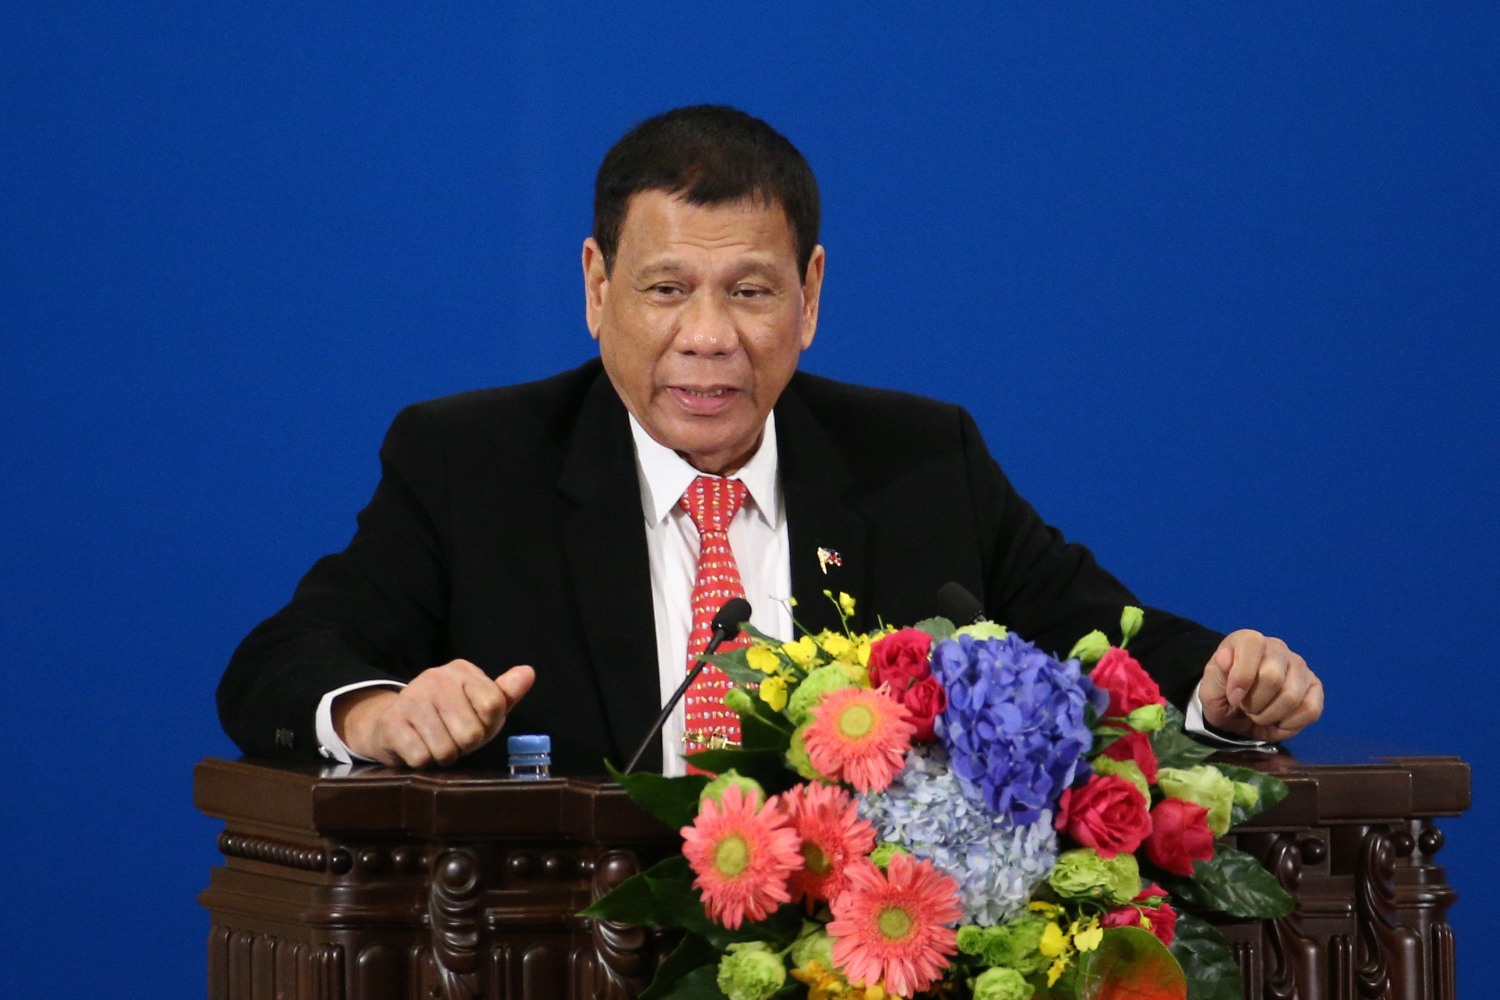 U.S. sends envoy to PH to clarify Duterte's 'separation' from US